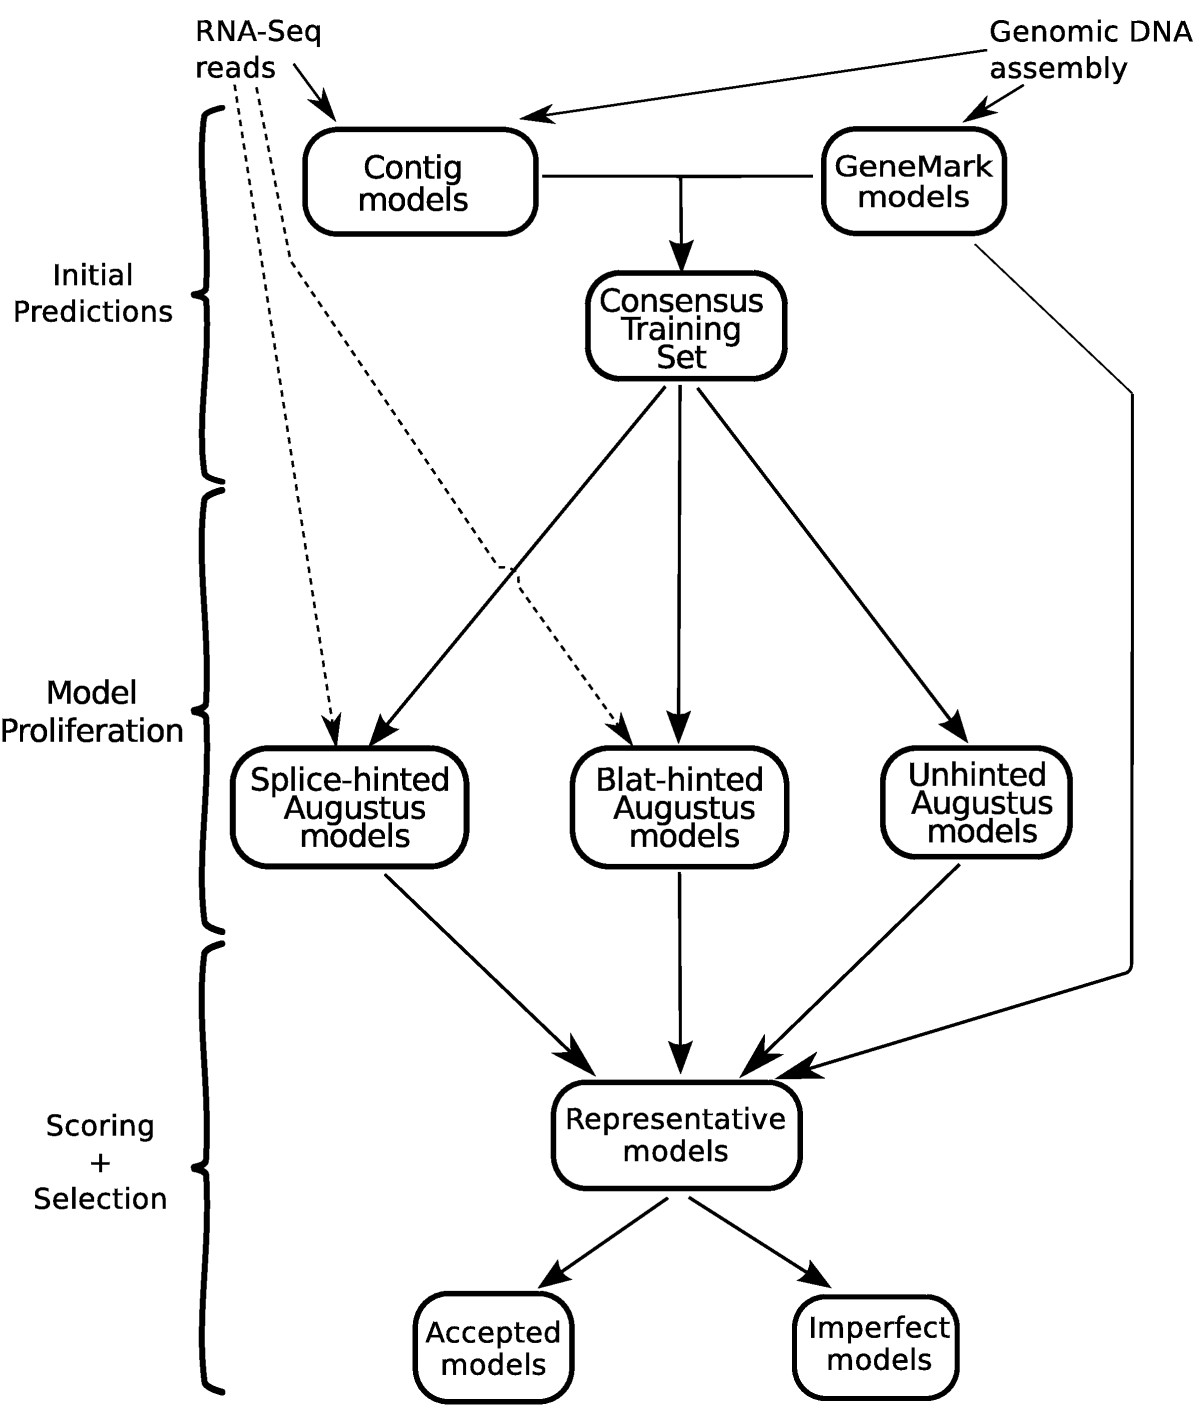 https://static-content.springer.com/image/art%3A10.1186%2F1471-2105-15-229/MediaObjects/12859_2013_Article_6479_Fig1_HTML.jpg